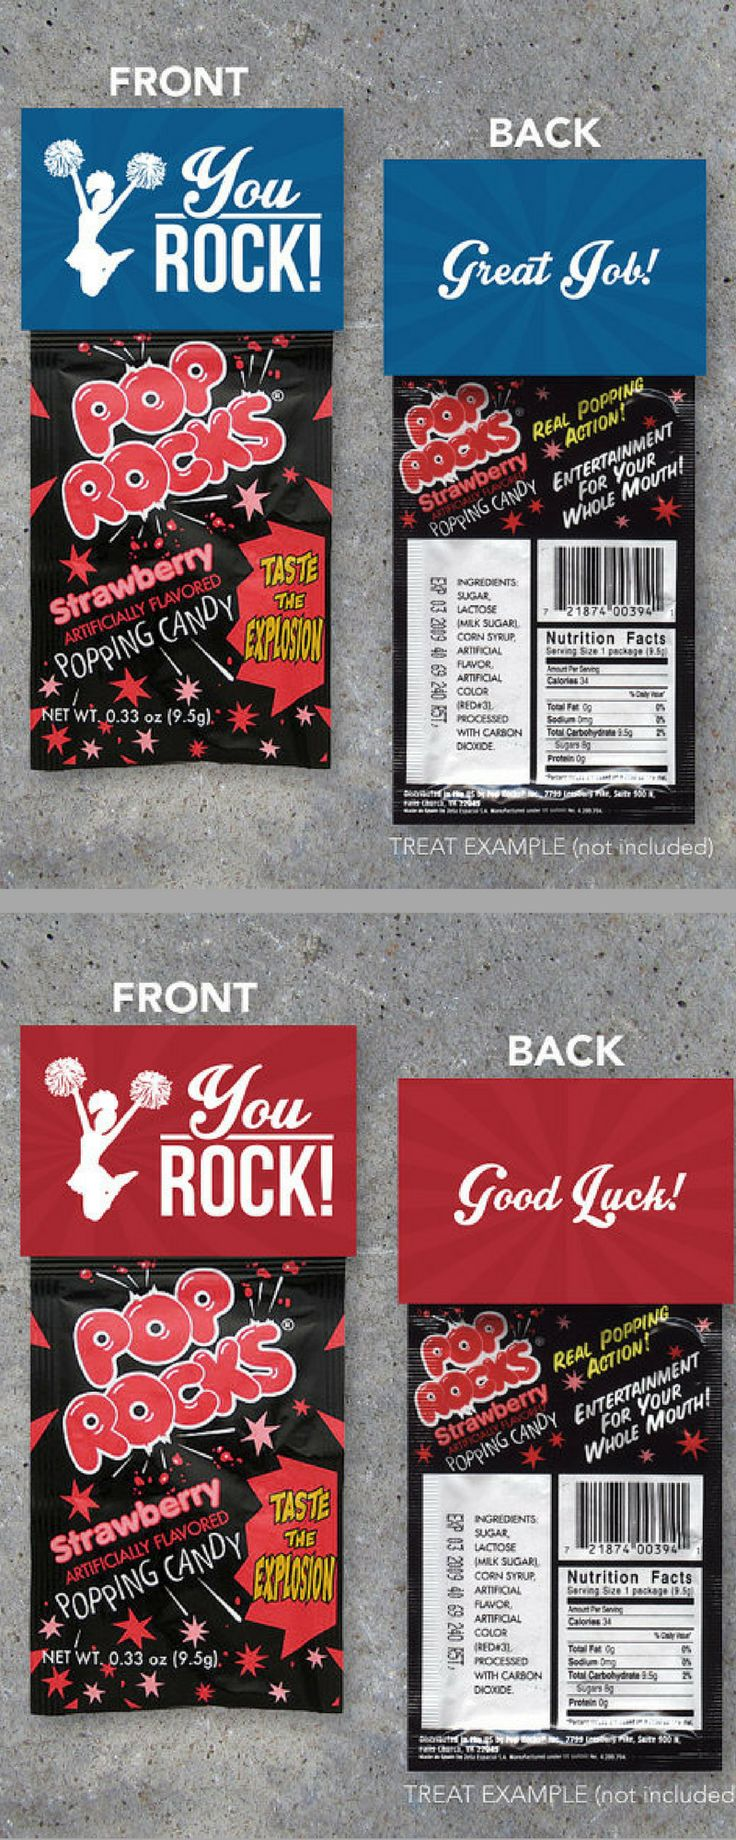 """$5. Cheerleading YOU ROCK Treat Toppers for Pop Rocks – Printable """"Good Luck"""" & """"Great Job"""" Red and Blue Gift Tags for Locker Treats-Cheer Gifts #ad"""